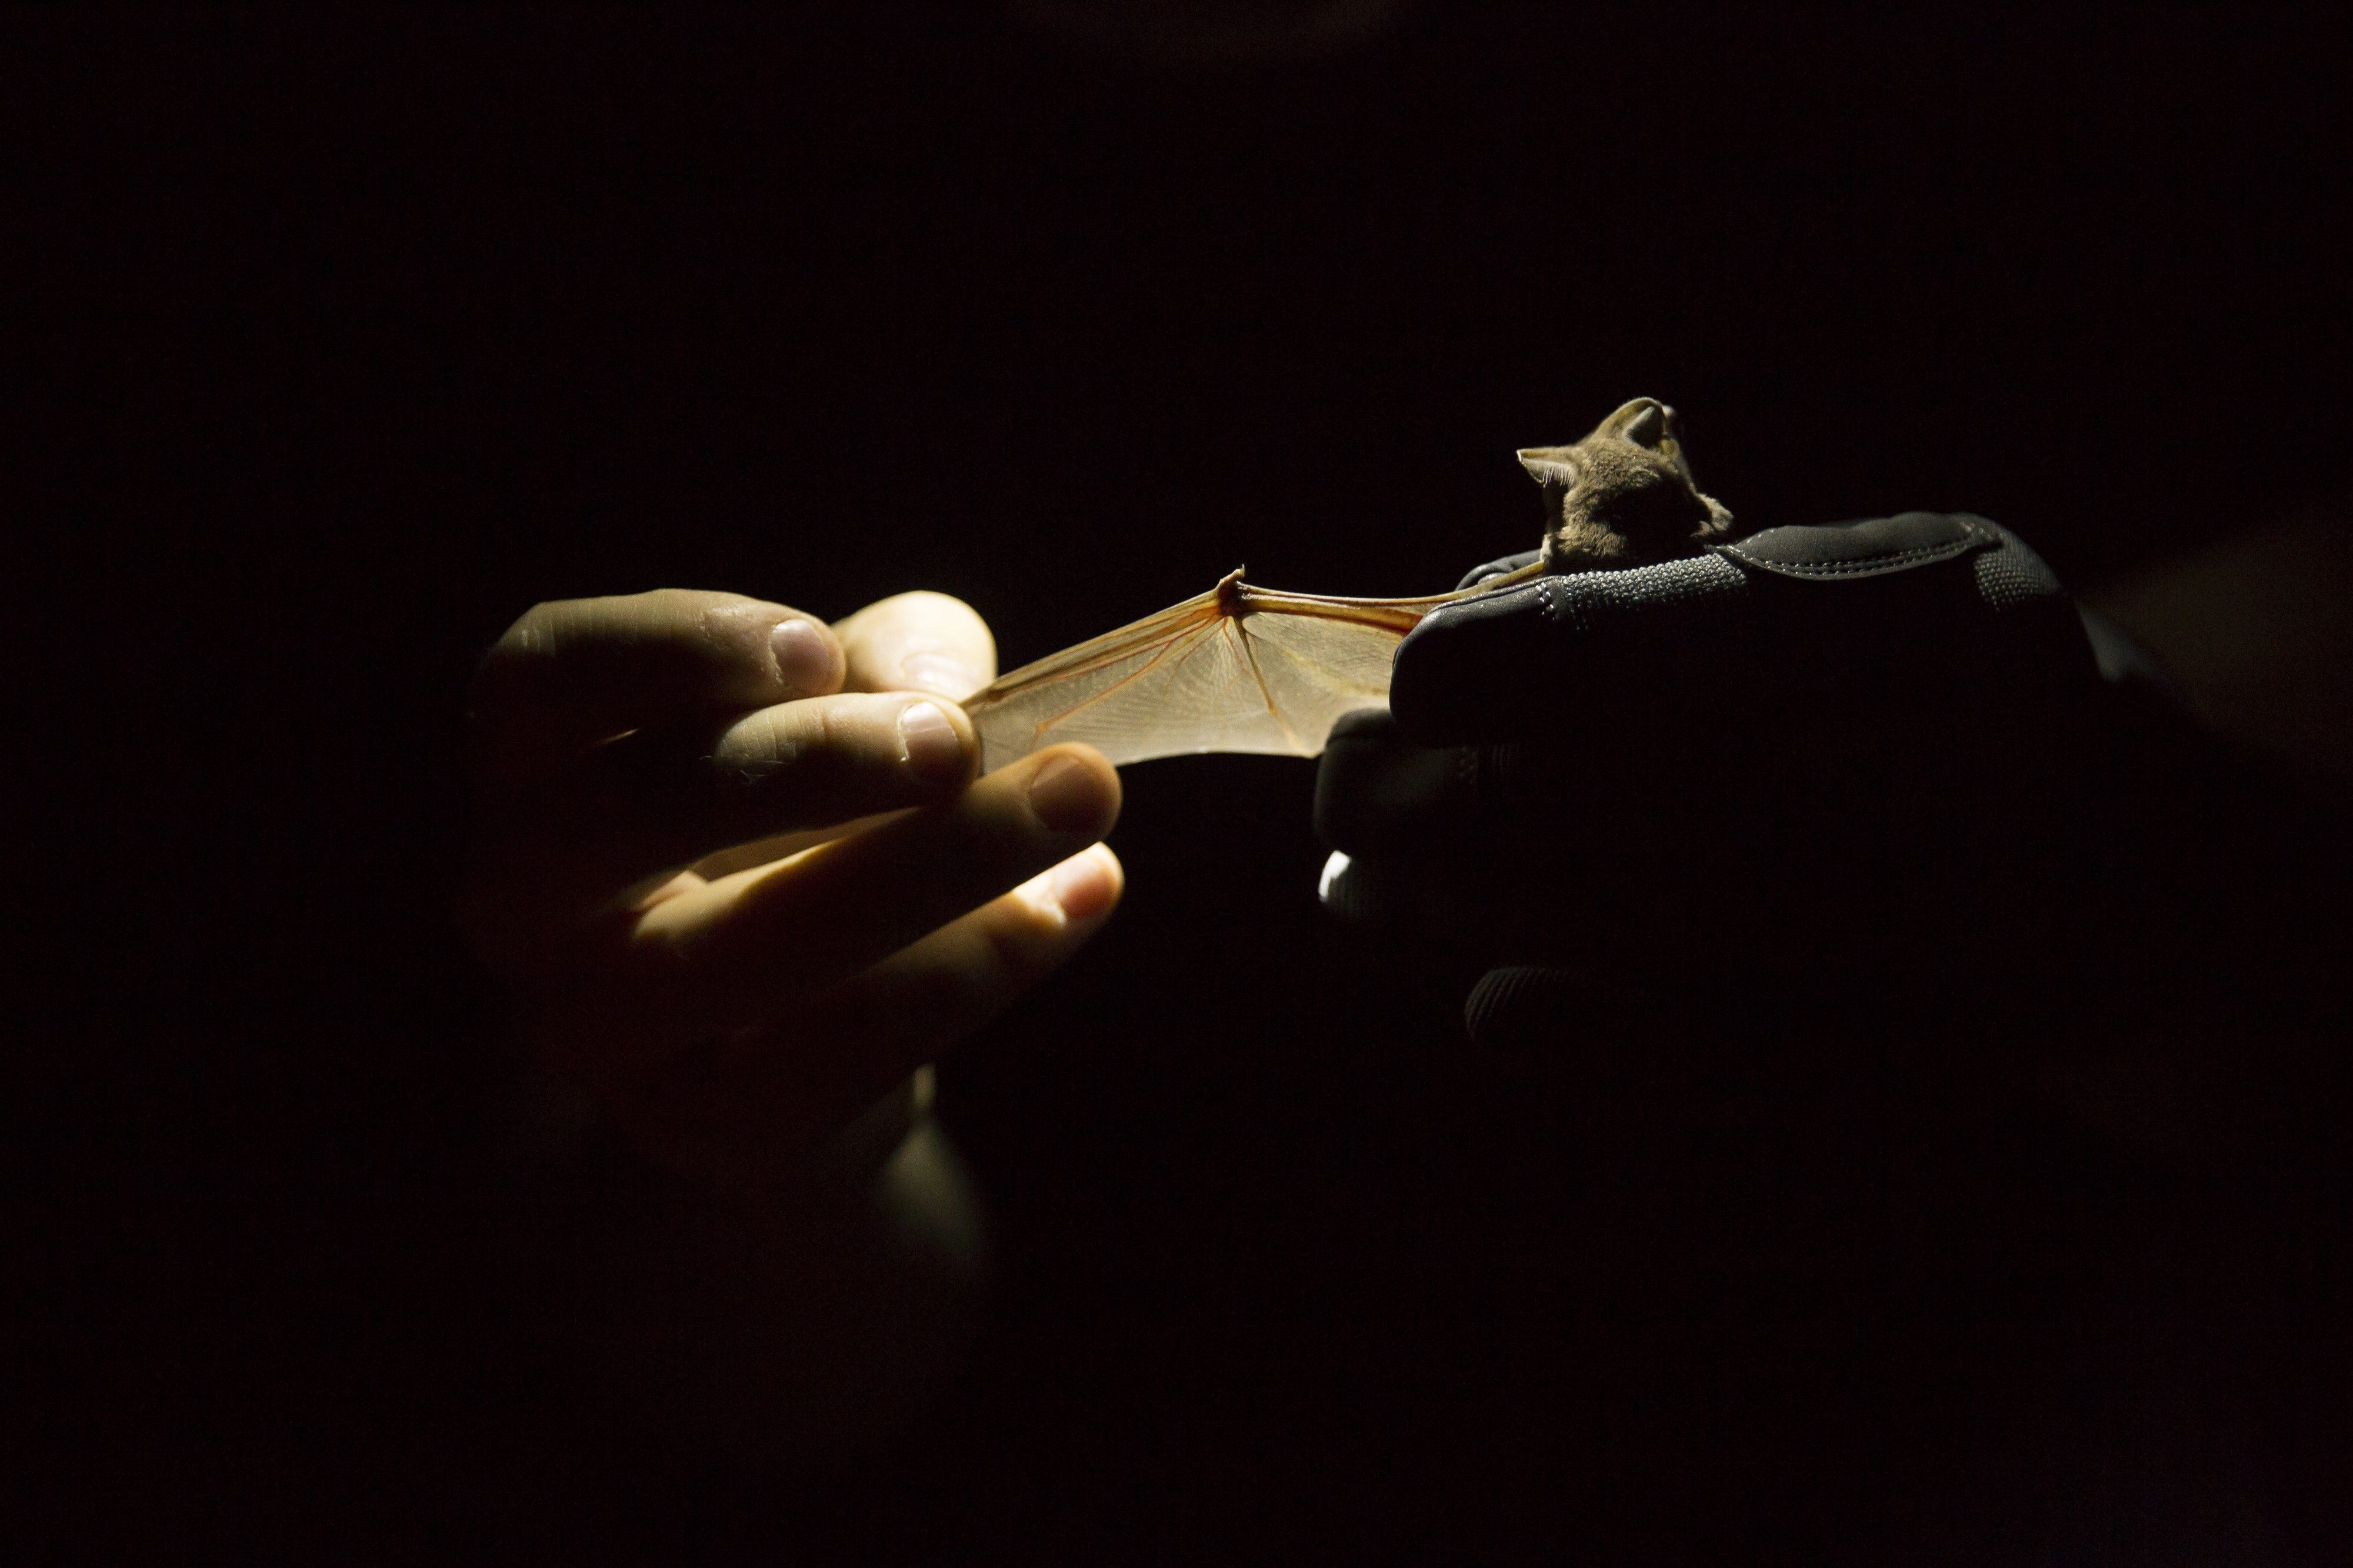 For Wintering Bats To Sleep or to Migrate? Wildlife